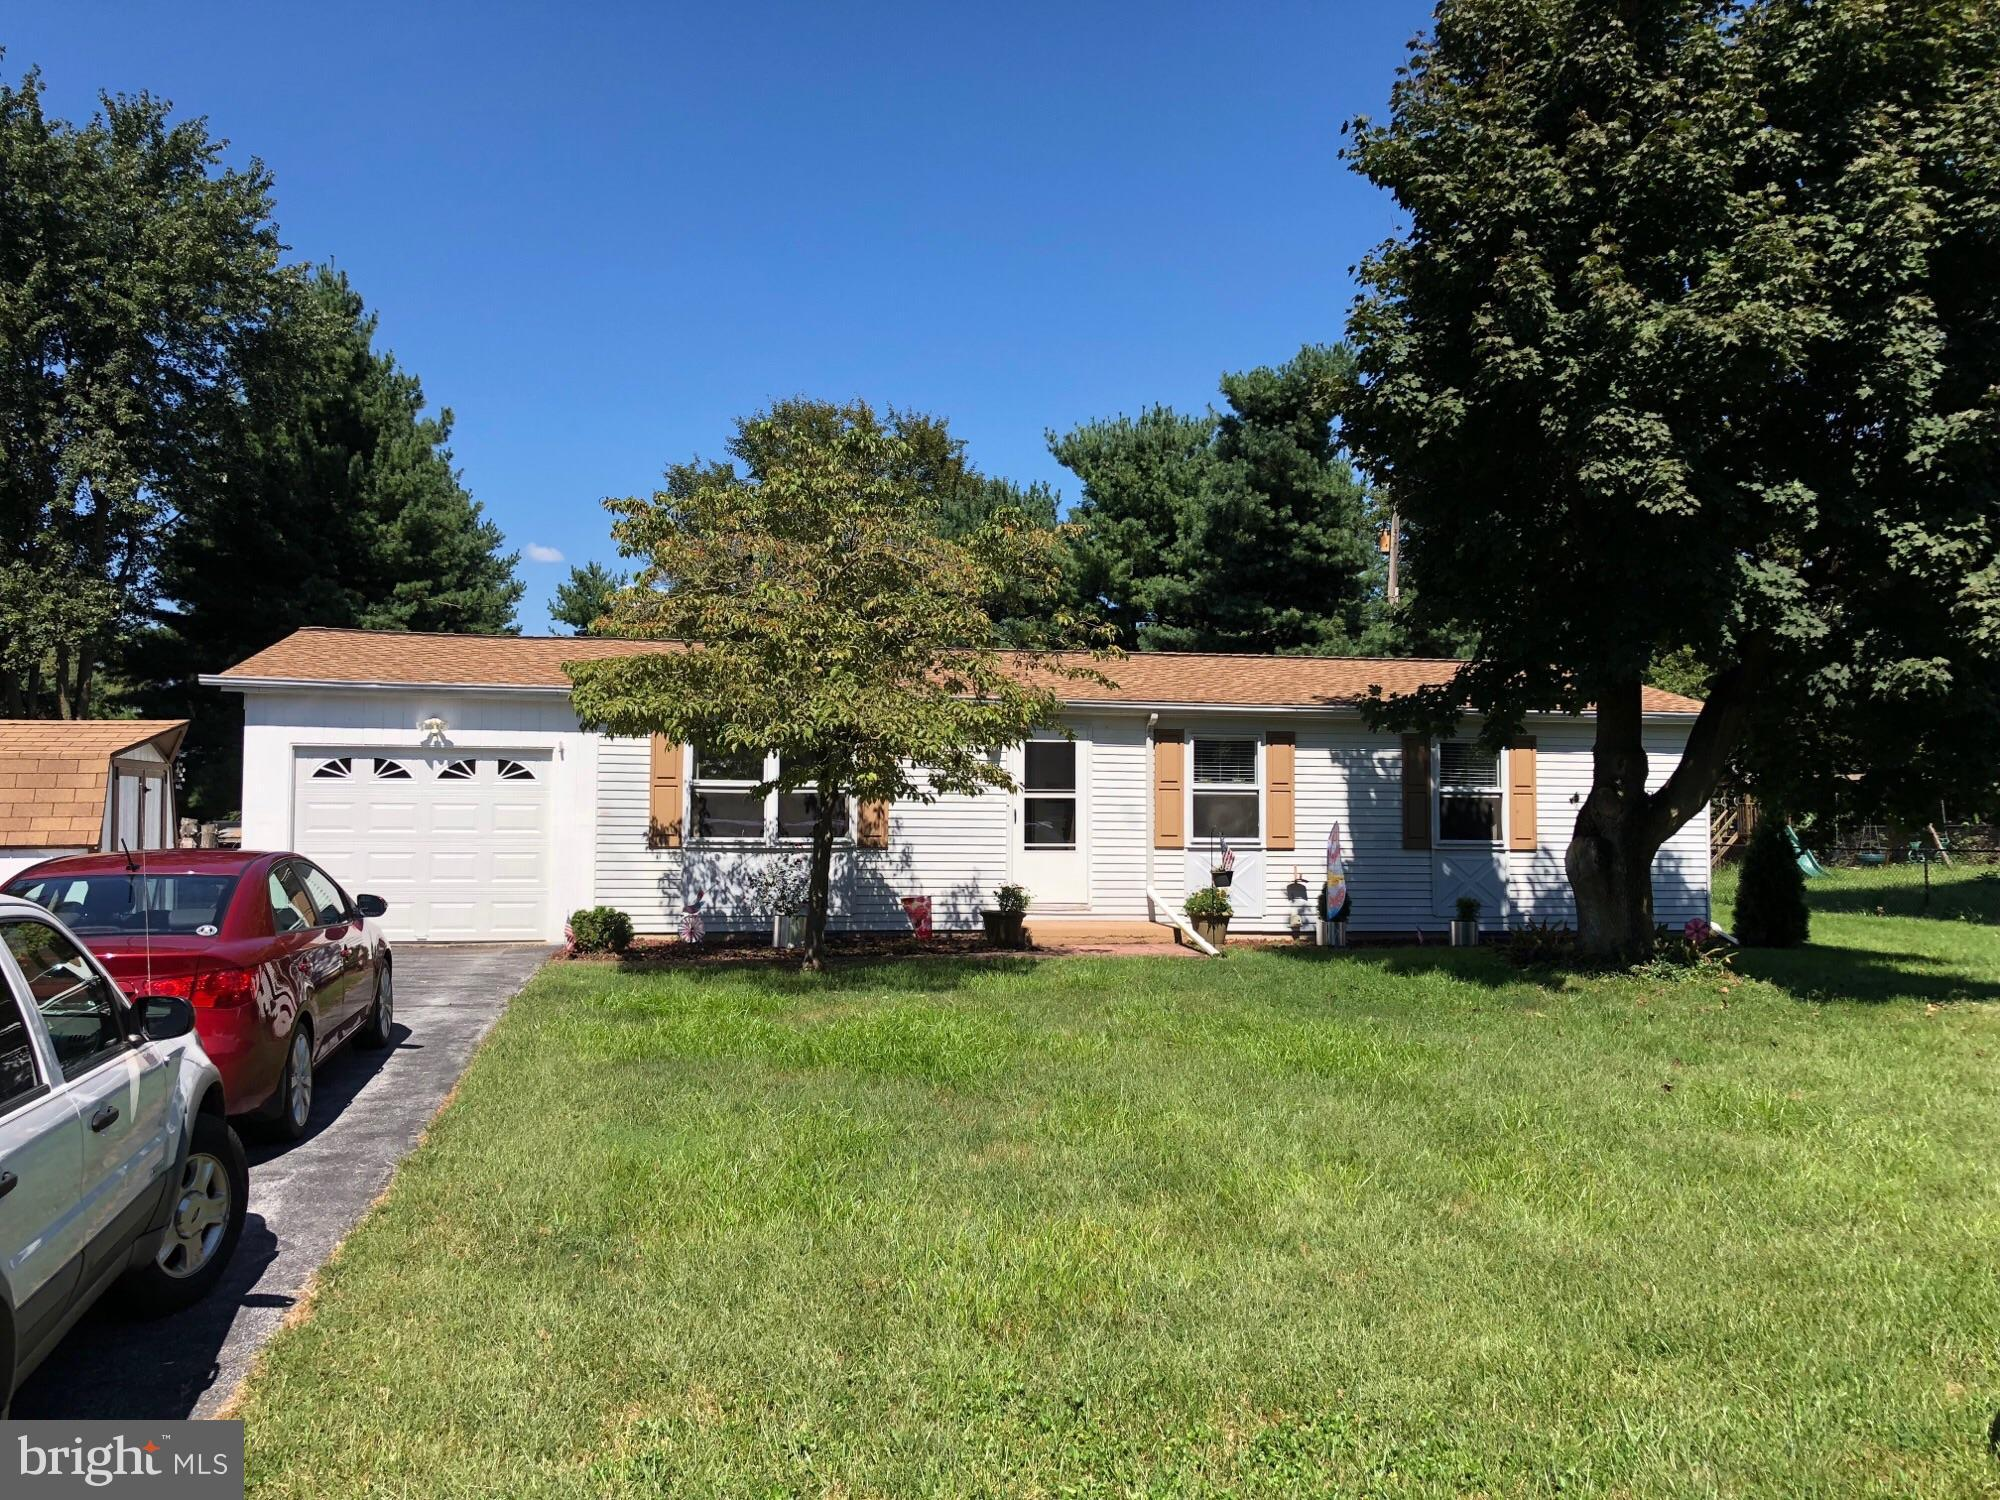 17816 ALPINE DRIVE, MAUGANSVILLE, MD 21767